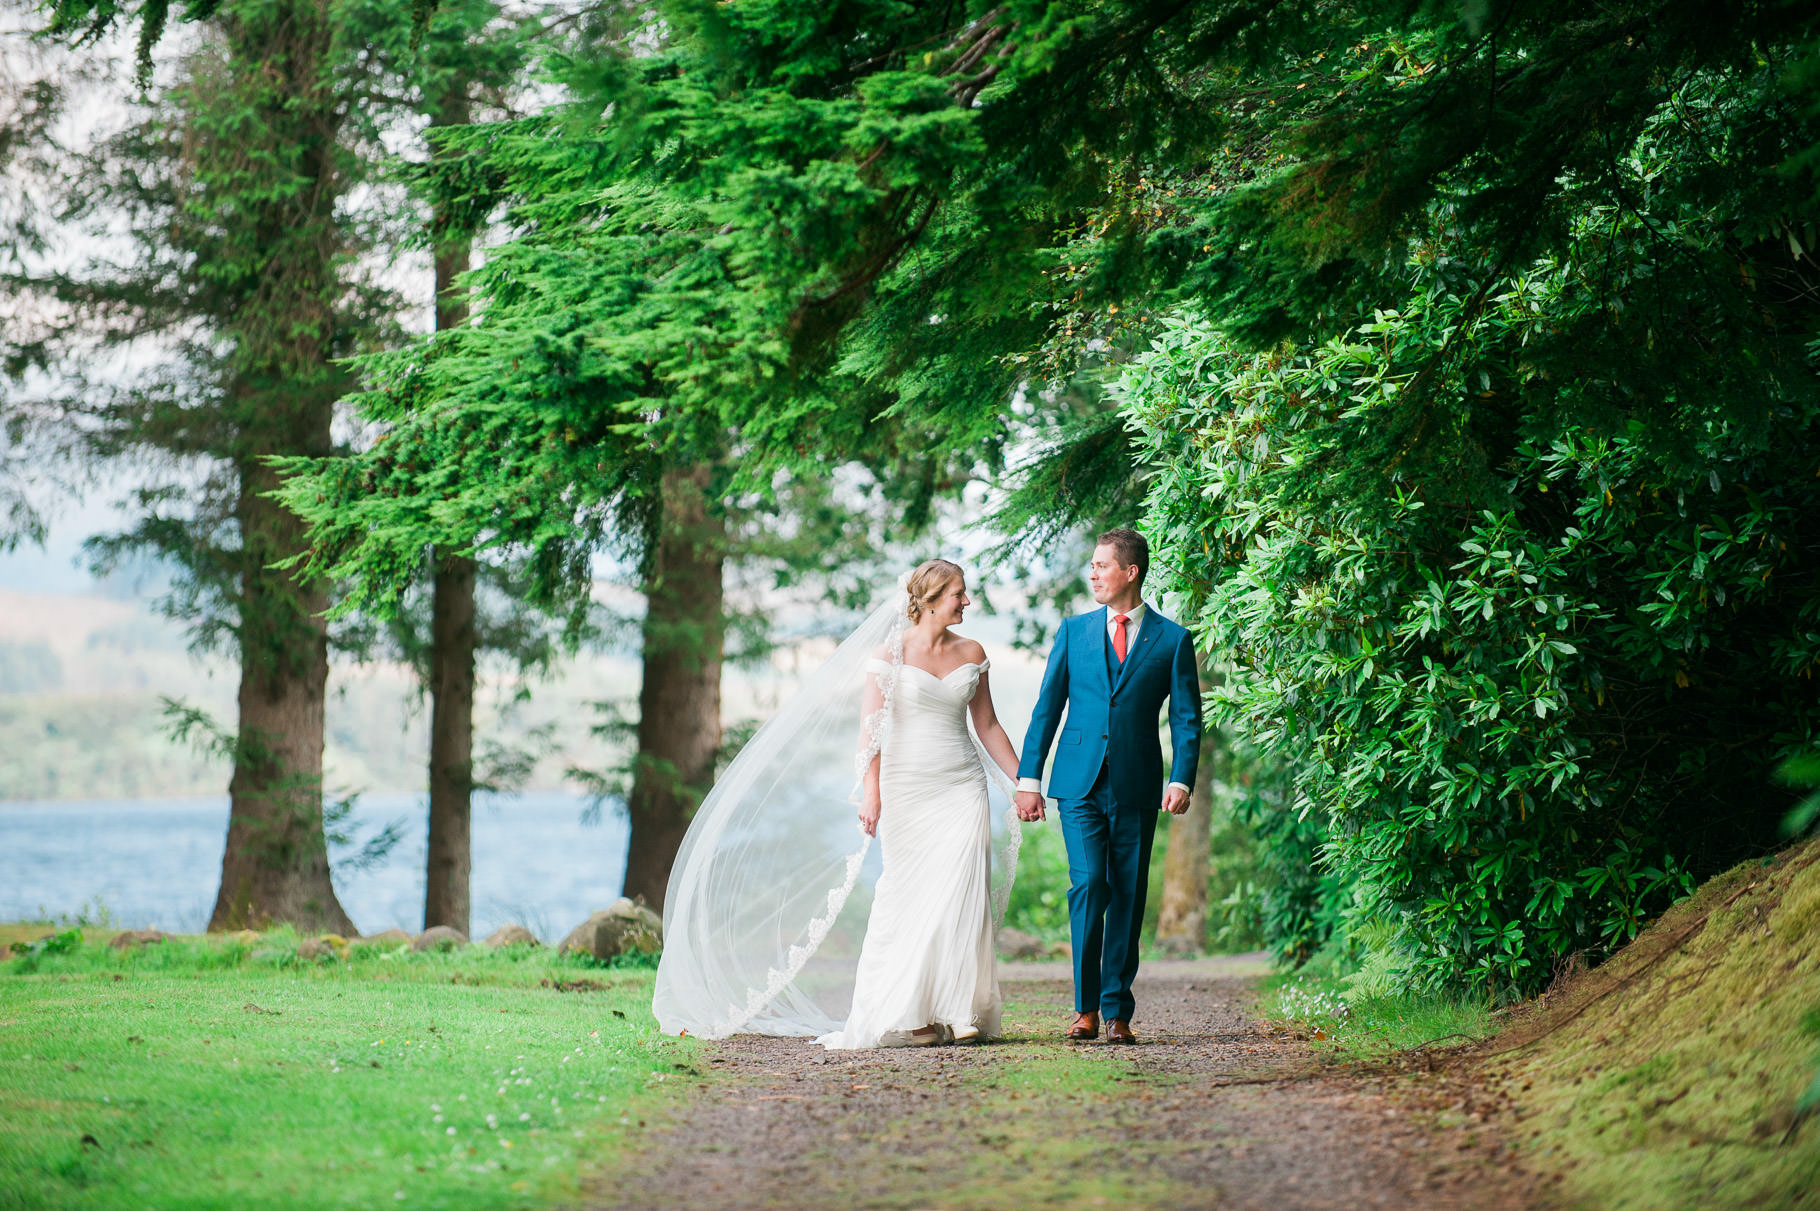 Scottish Highland Wedding by Loch Awe-bride and groom walking by loch awe-wedding veil